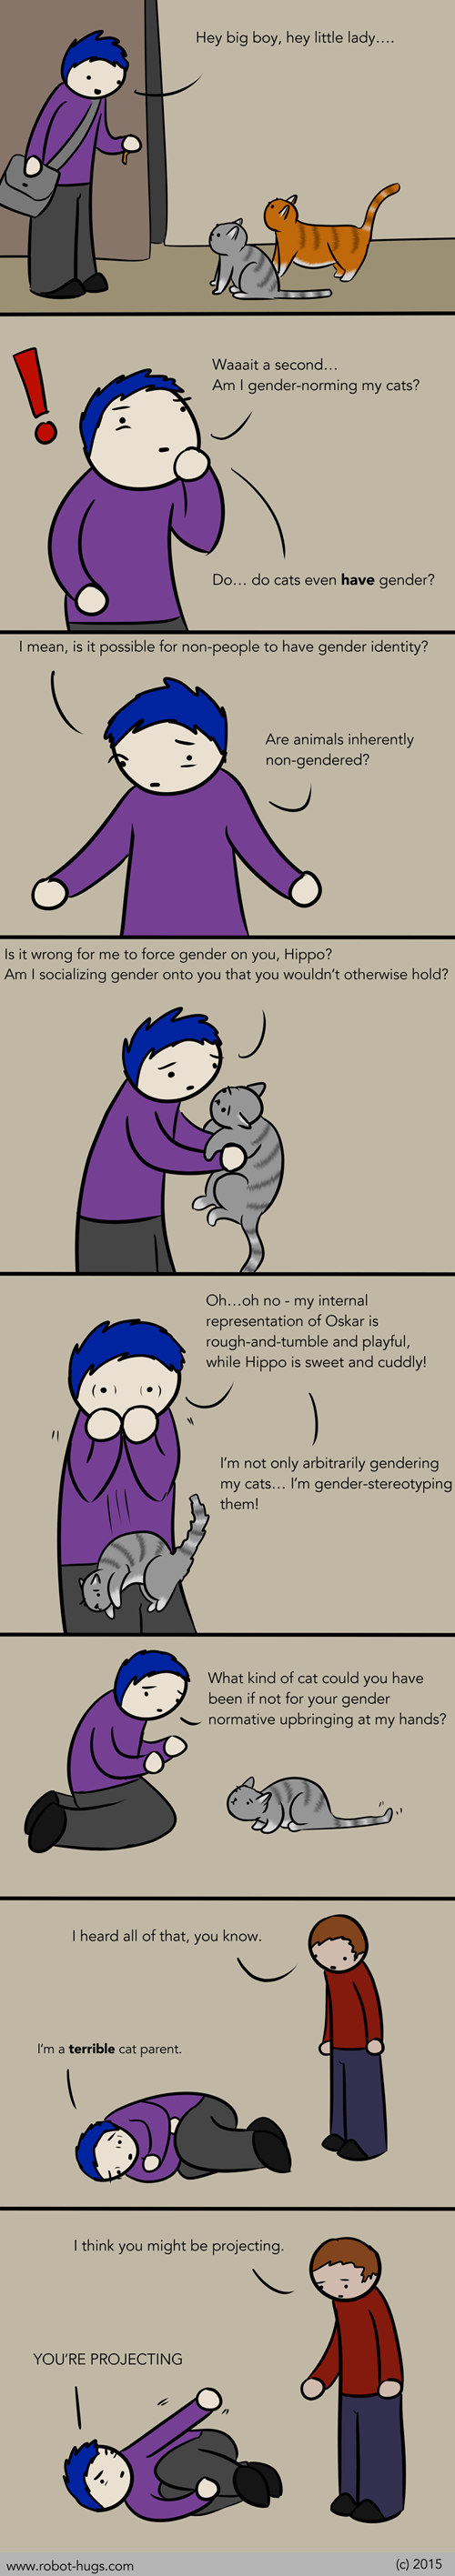 gender pets parenting web comics false binaries - 8431139584